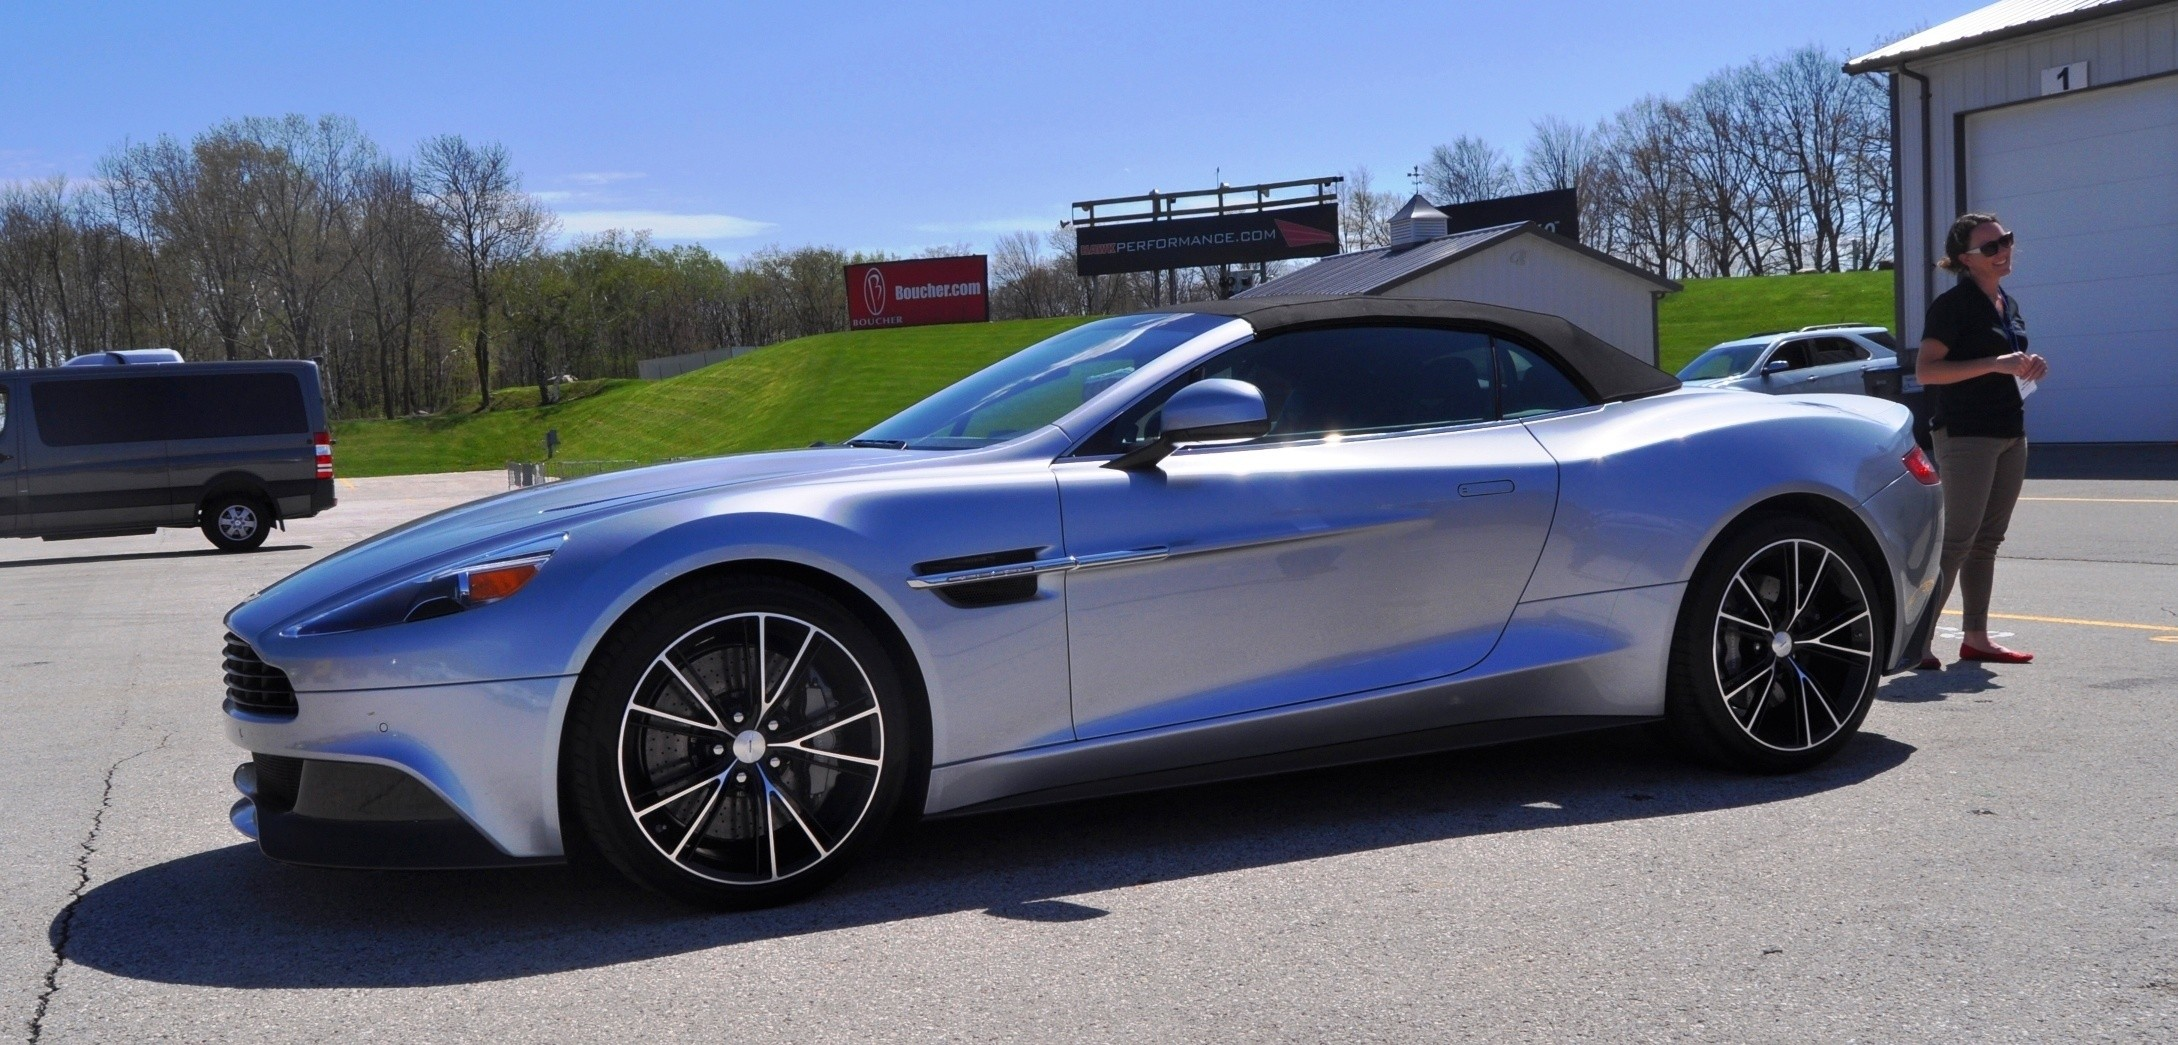 2014 aston martin vanquish volante in the flesh thisclose to test drive but. Black Bedroom Furniture Sets. Home Design Ideas